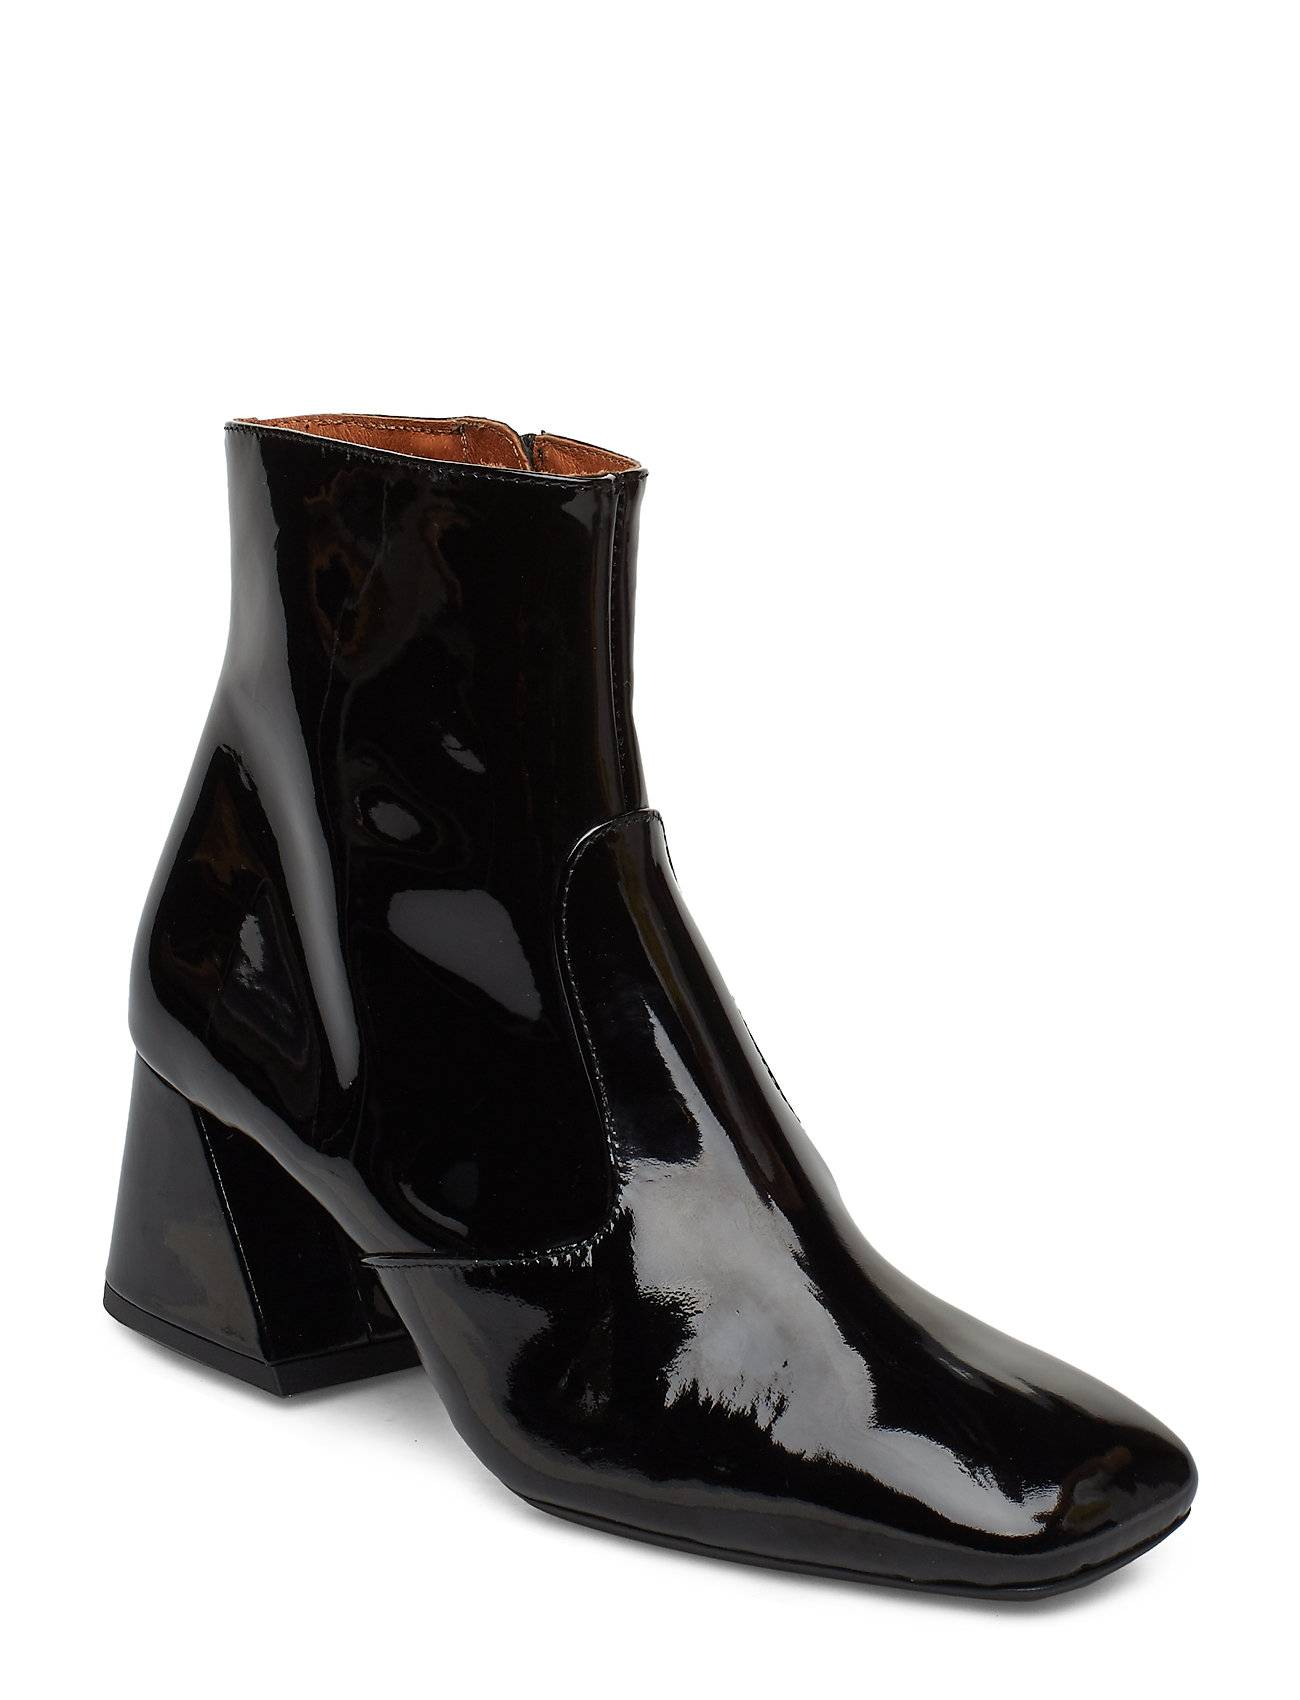 Henry Kole Nora Patent Black Shoes Boots Ankle Boots Ankle Boot - Heel Musta Henry Kole